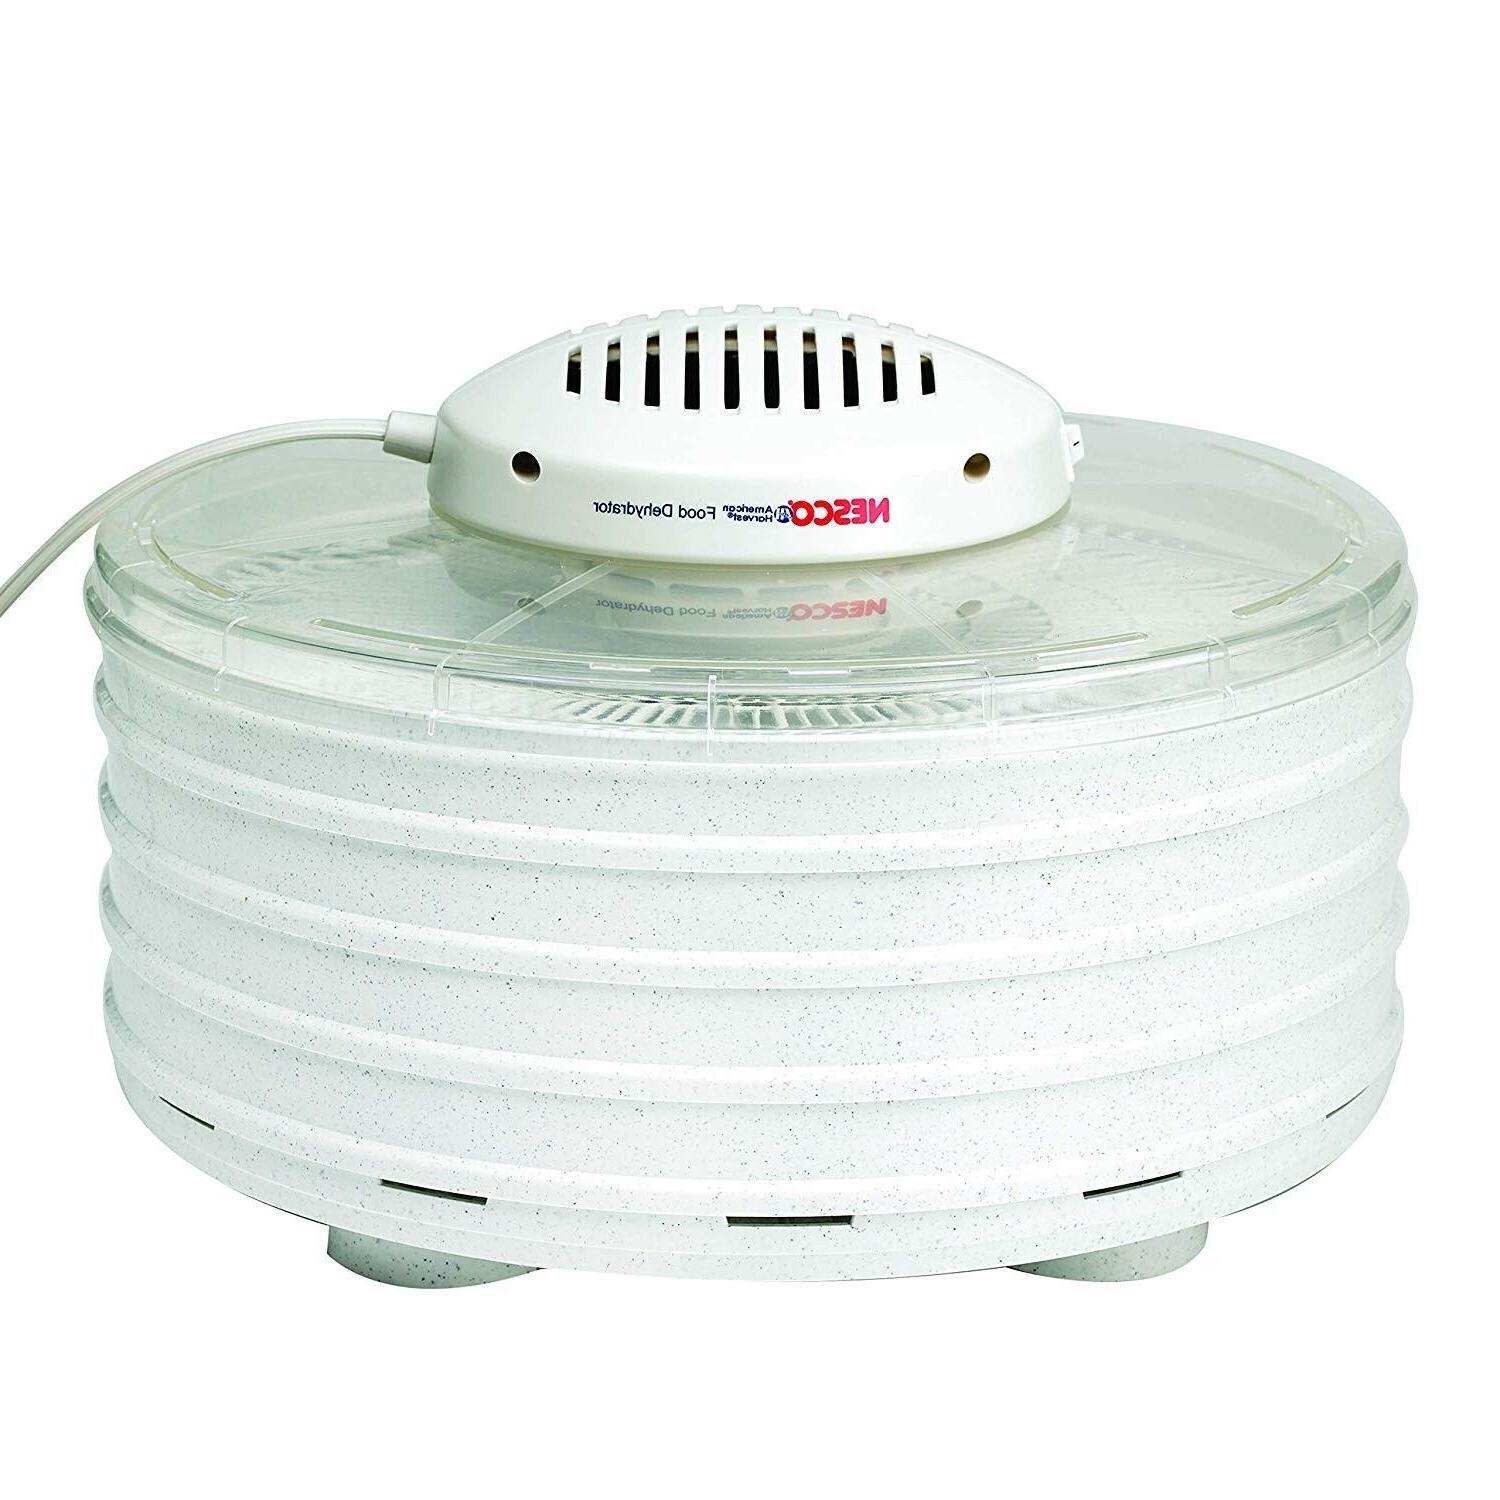 new hot food dehydrator white speckled marbled